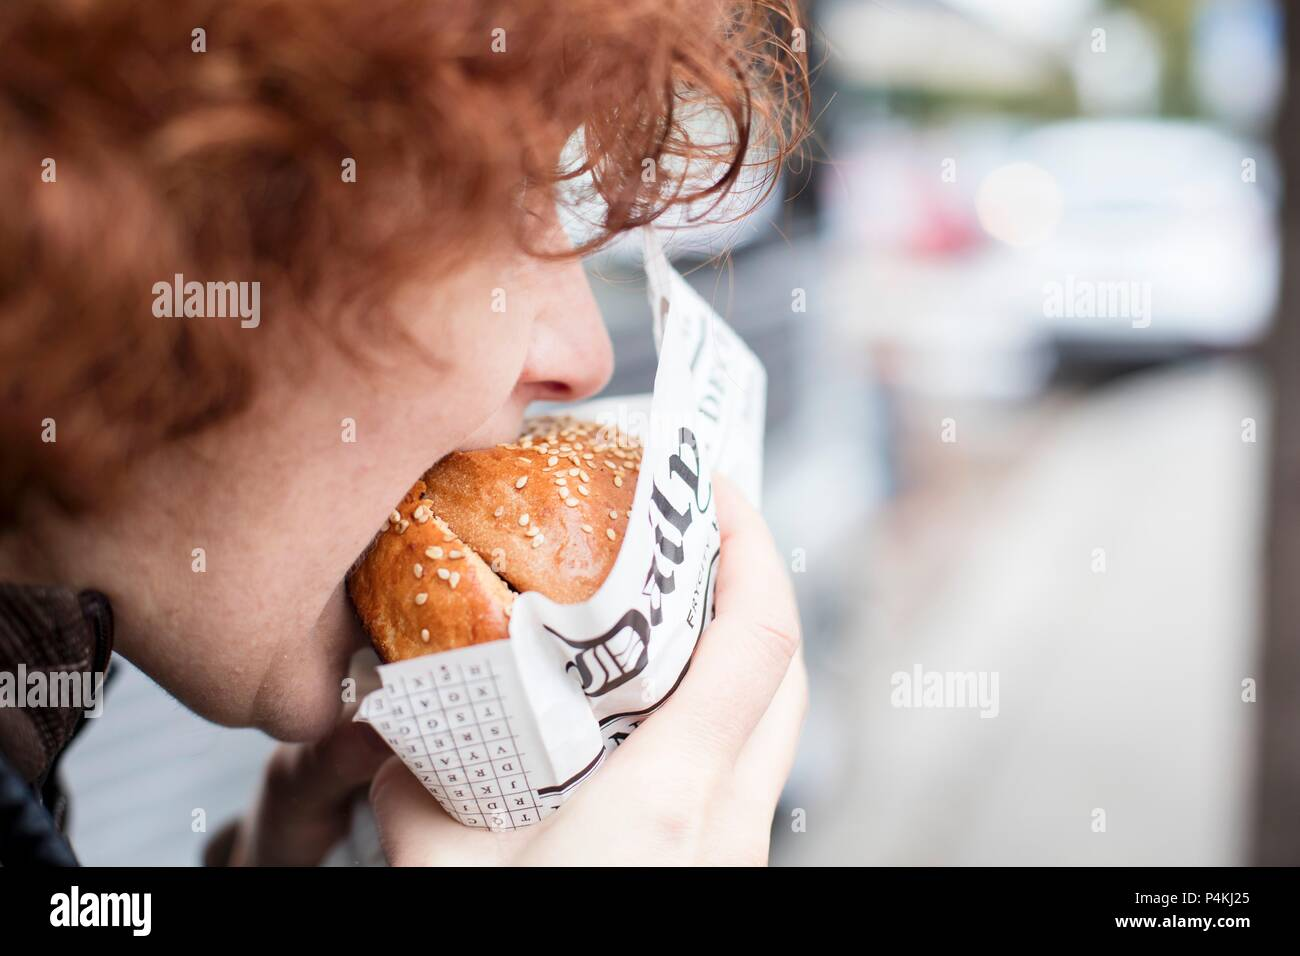 A red-haired teenager biting into a hamburger Stock Photo